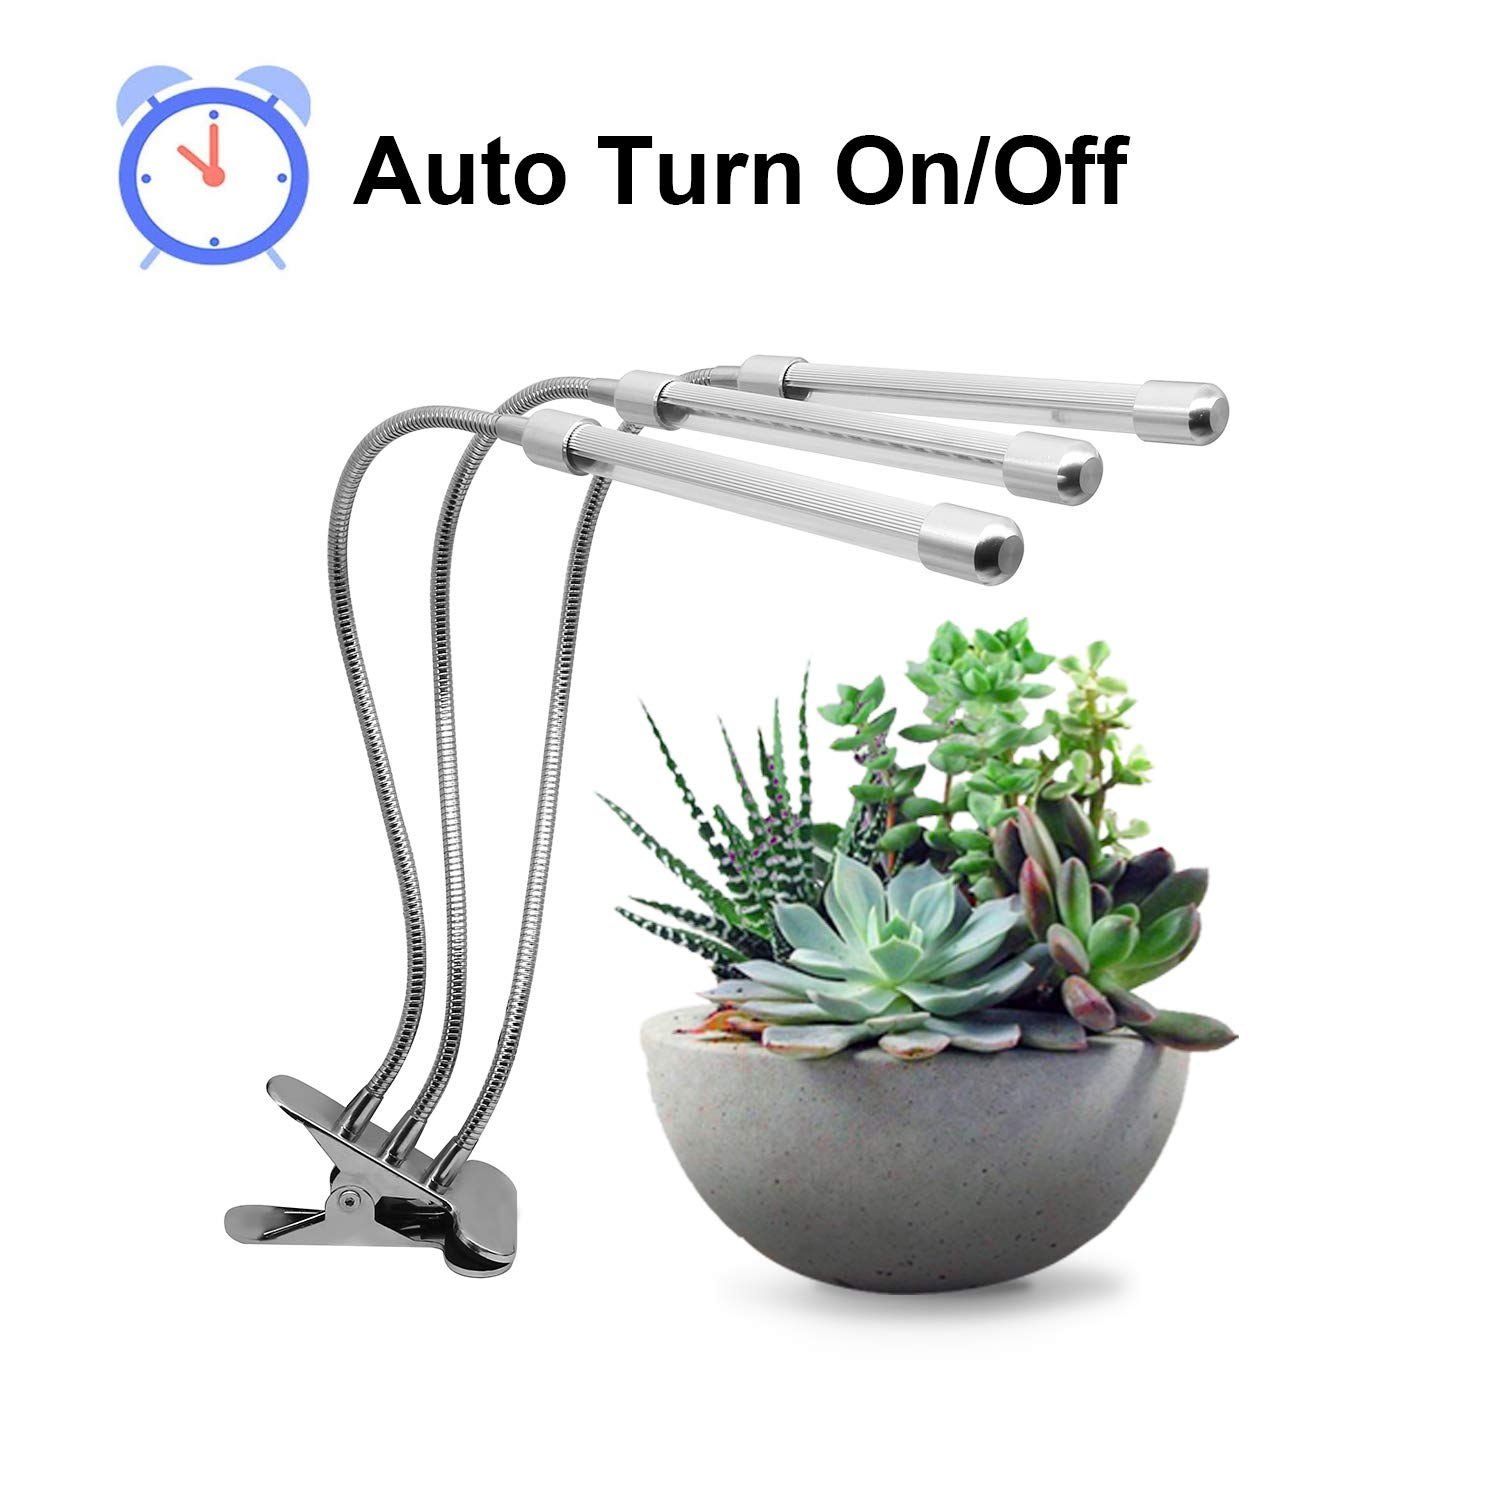 Plant Grow Light with Auto Turn On/Off Function, CANAGROW 27W 54 LED Plant Grow Lamps for Indoor Plants, 3 Head Timing Grow Light, 3/9/12H Timer, 5 Dimmable Levels, 360 Degree Adjustable Gooseneck